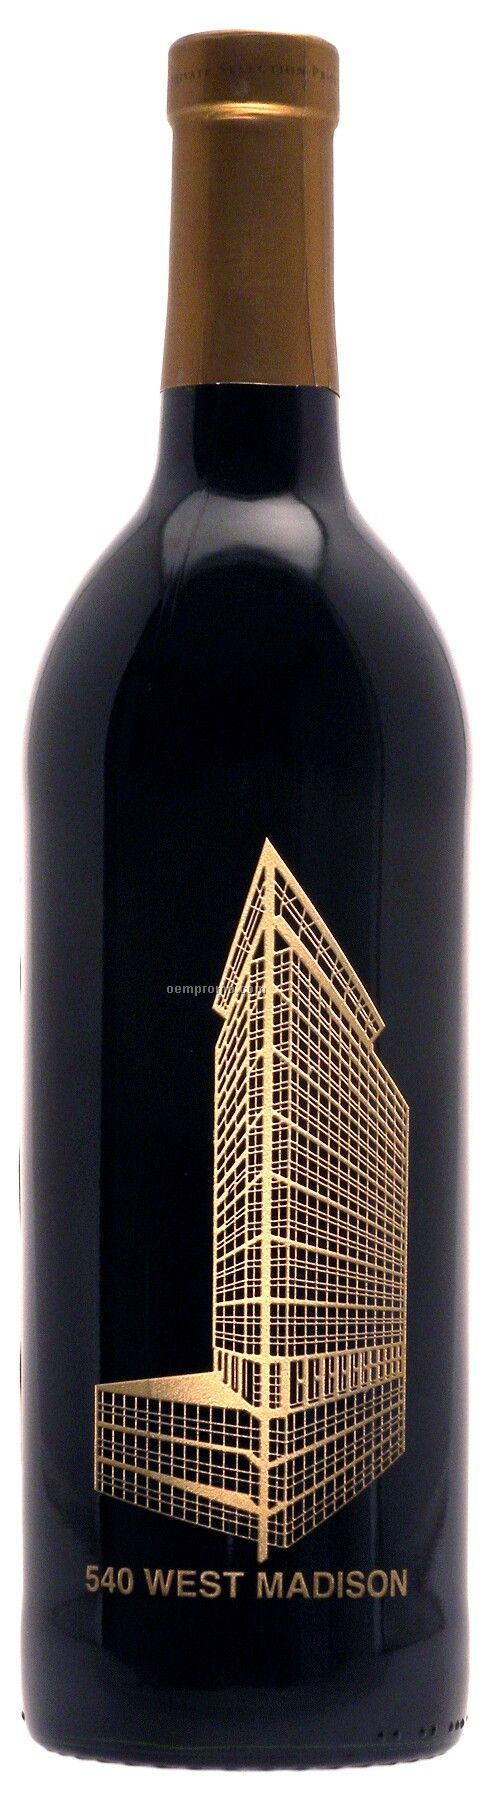 750ml Standard Merlot Wine Etched W/1 Color Fill